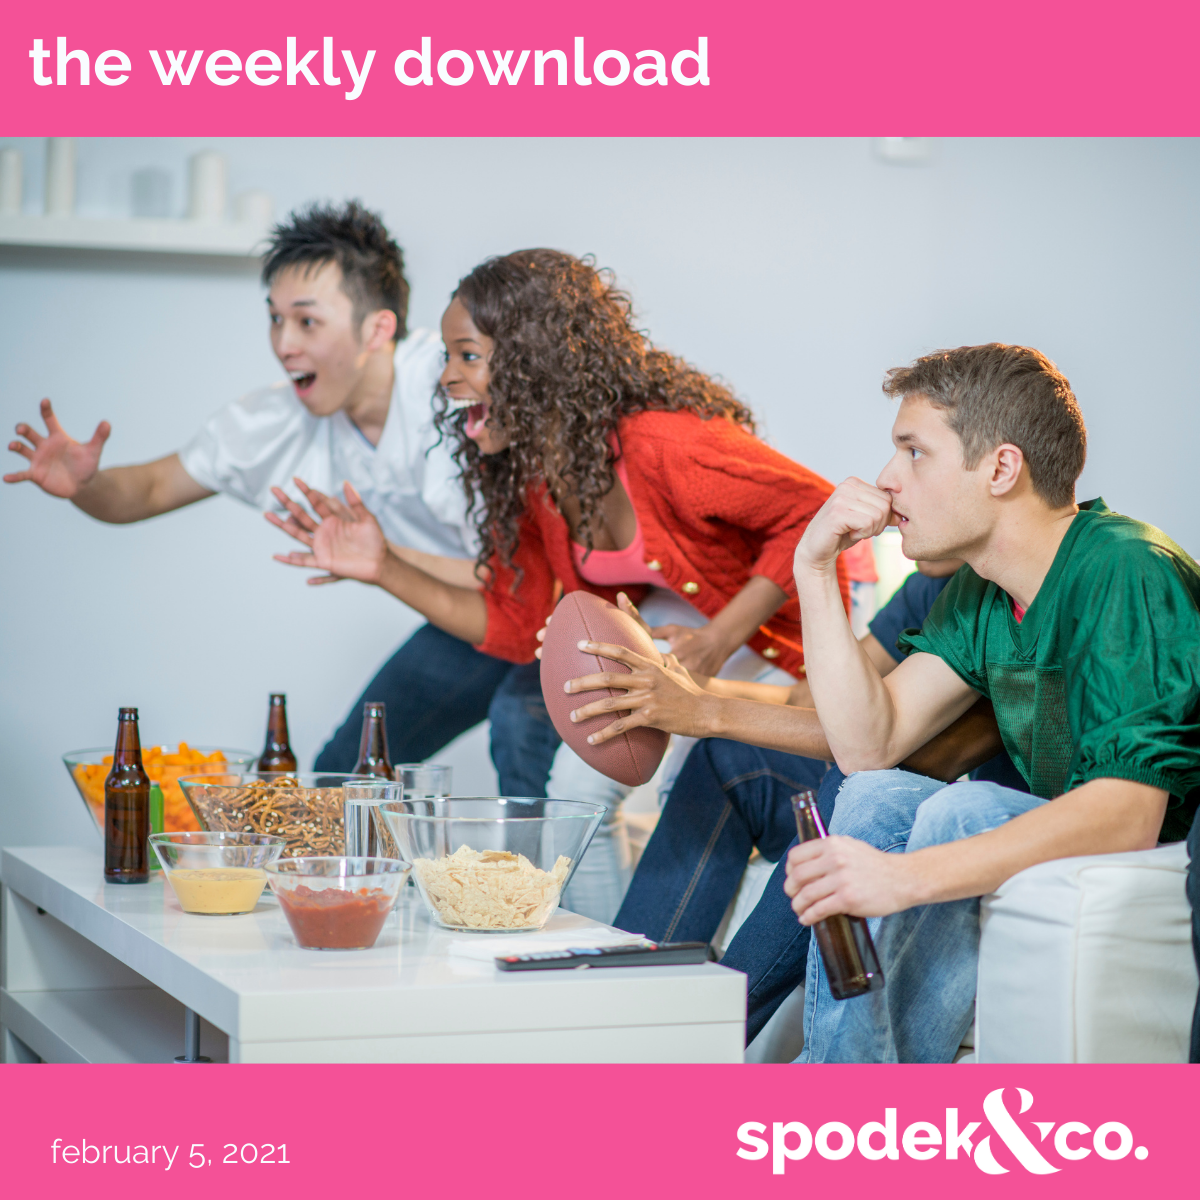 The Weekly Download – February 5, 2021